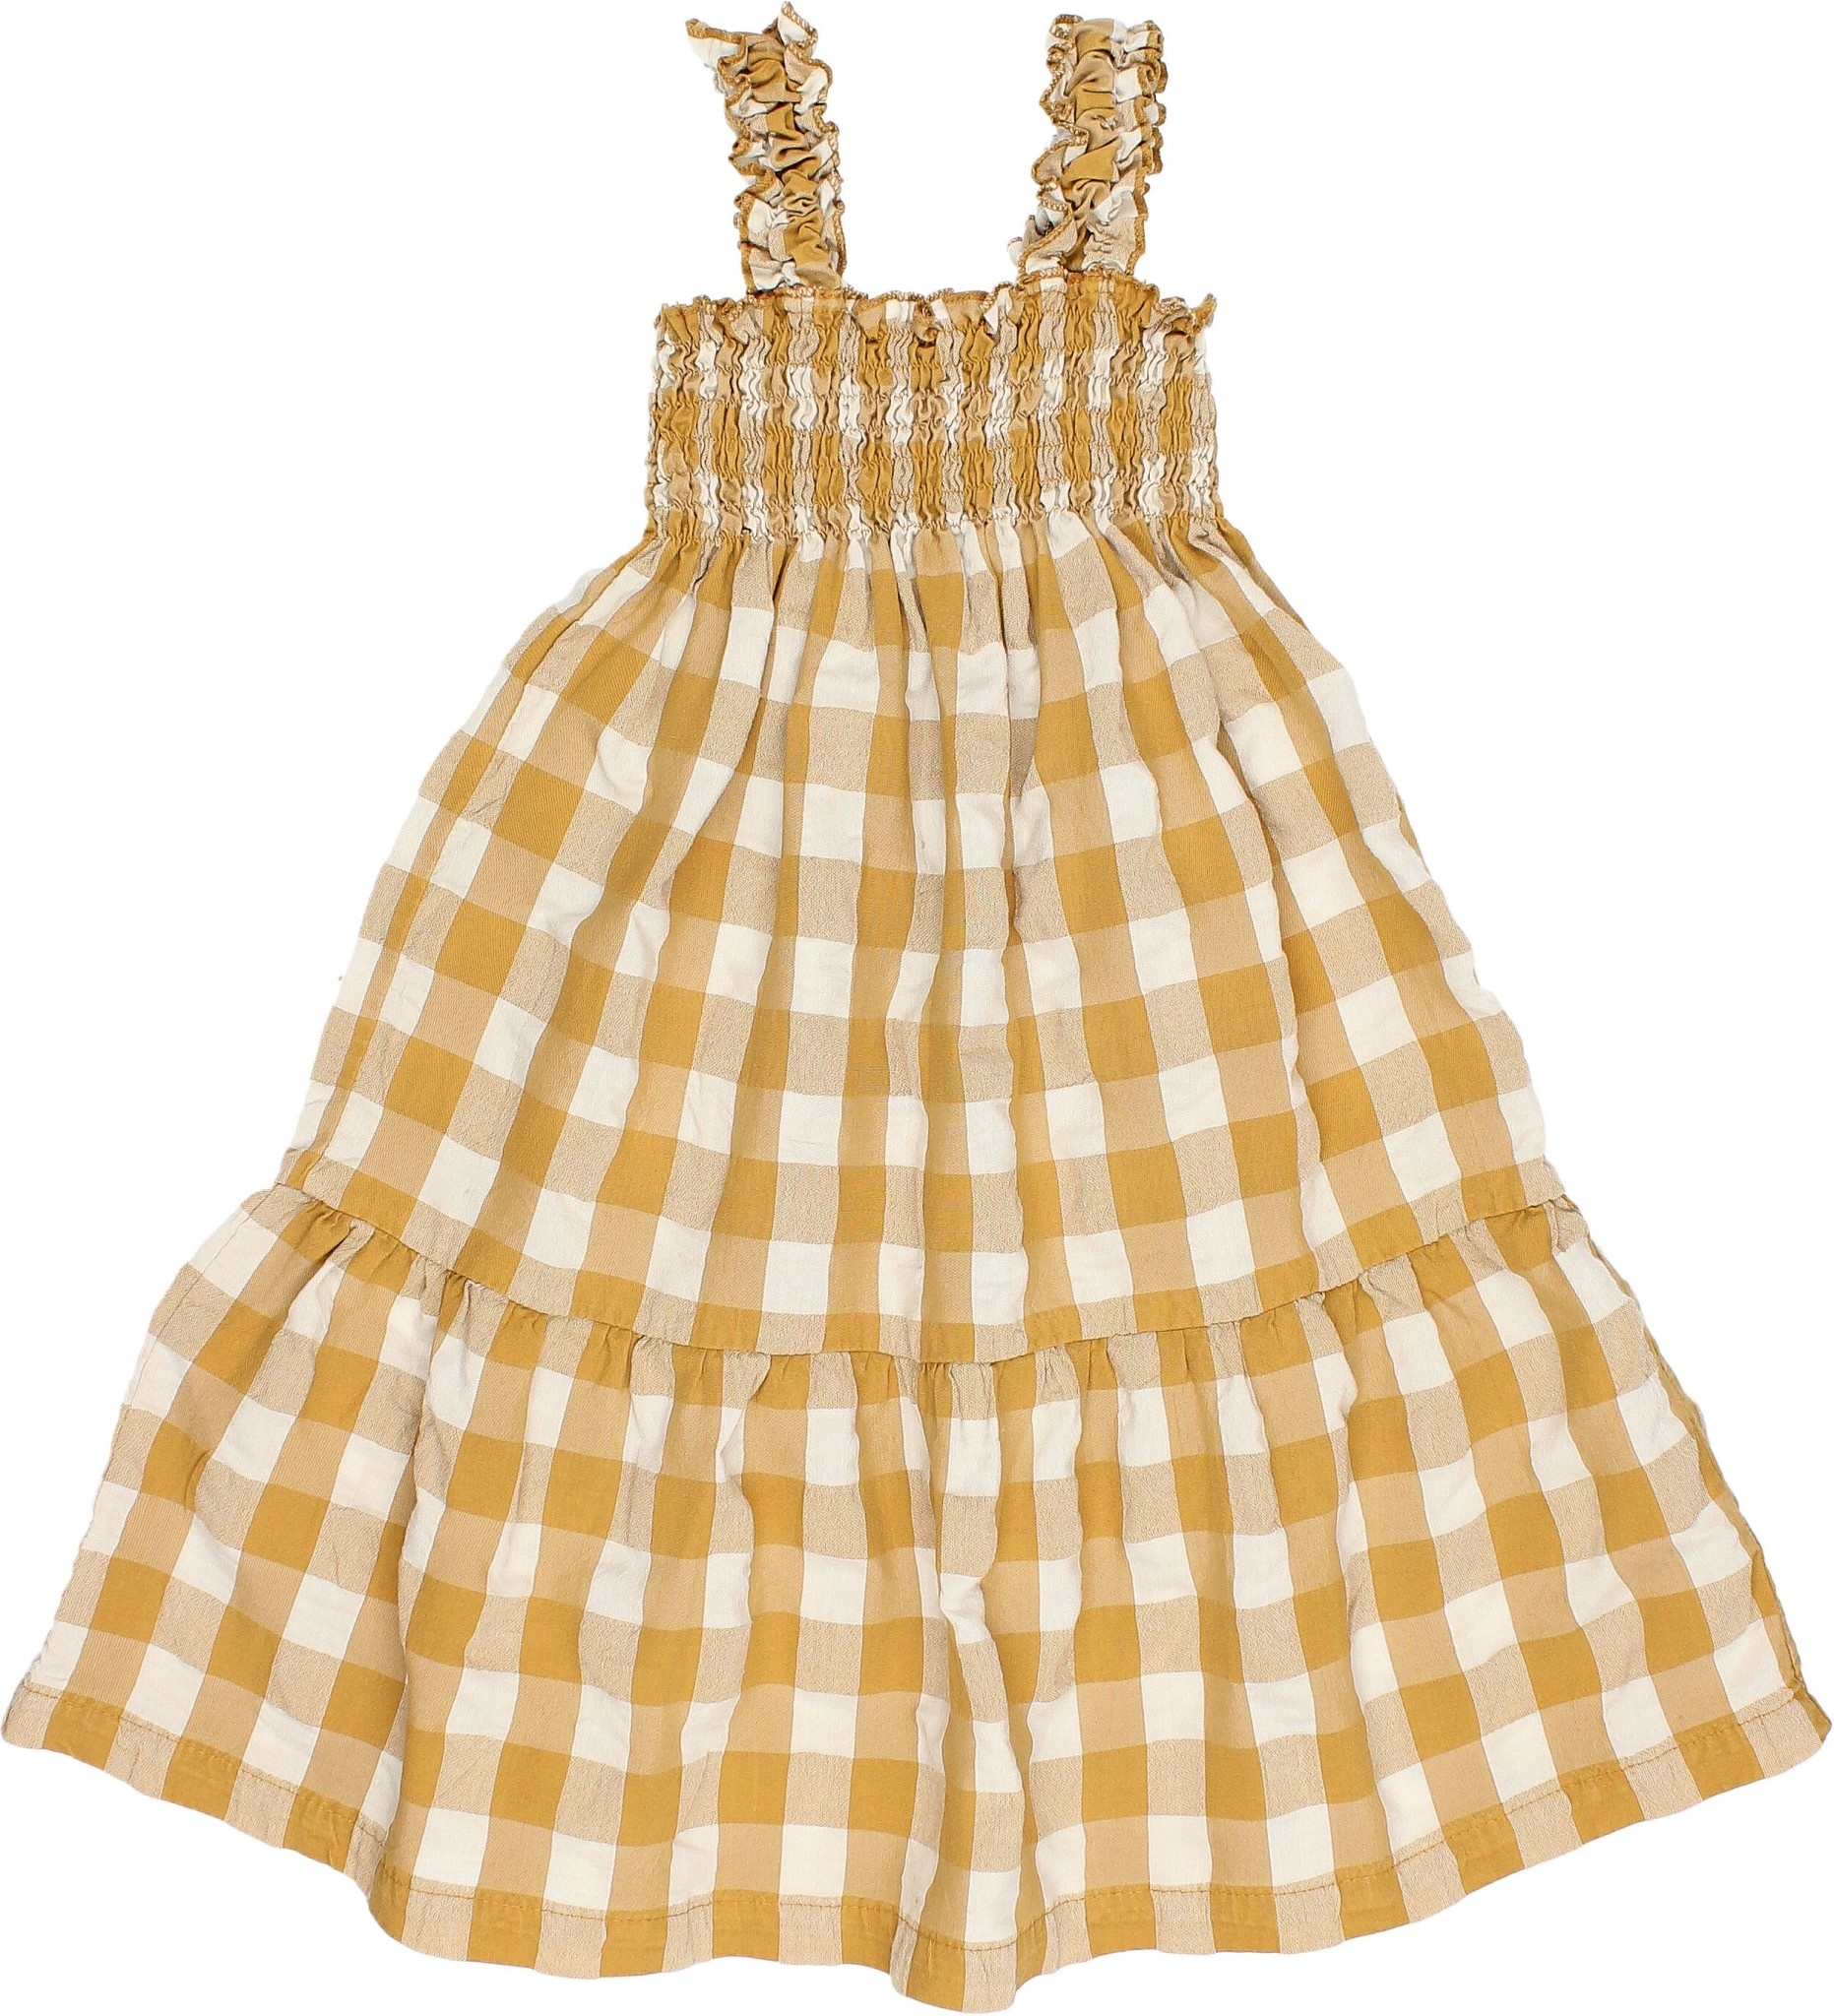 BUHO Gingham Seersucker Dress